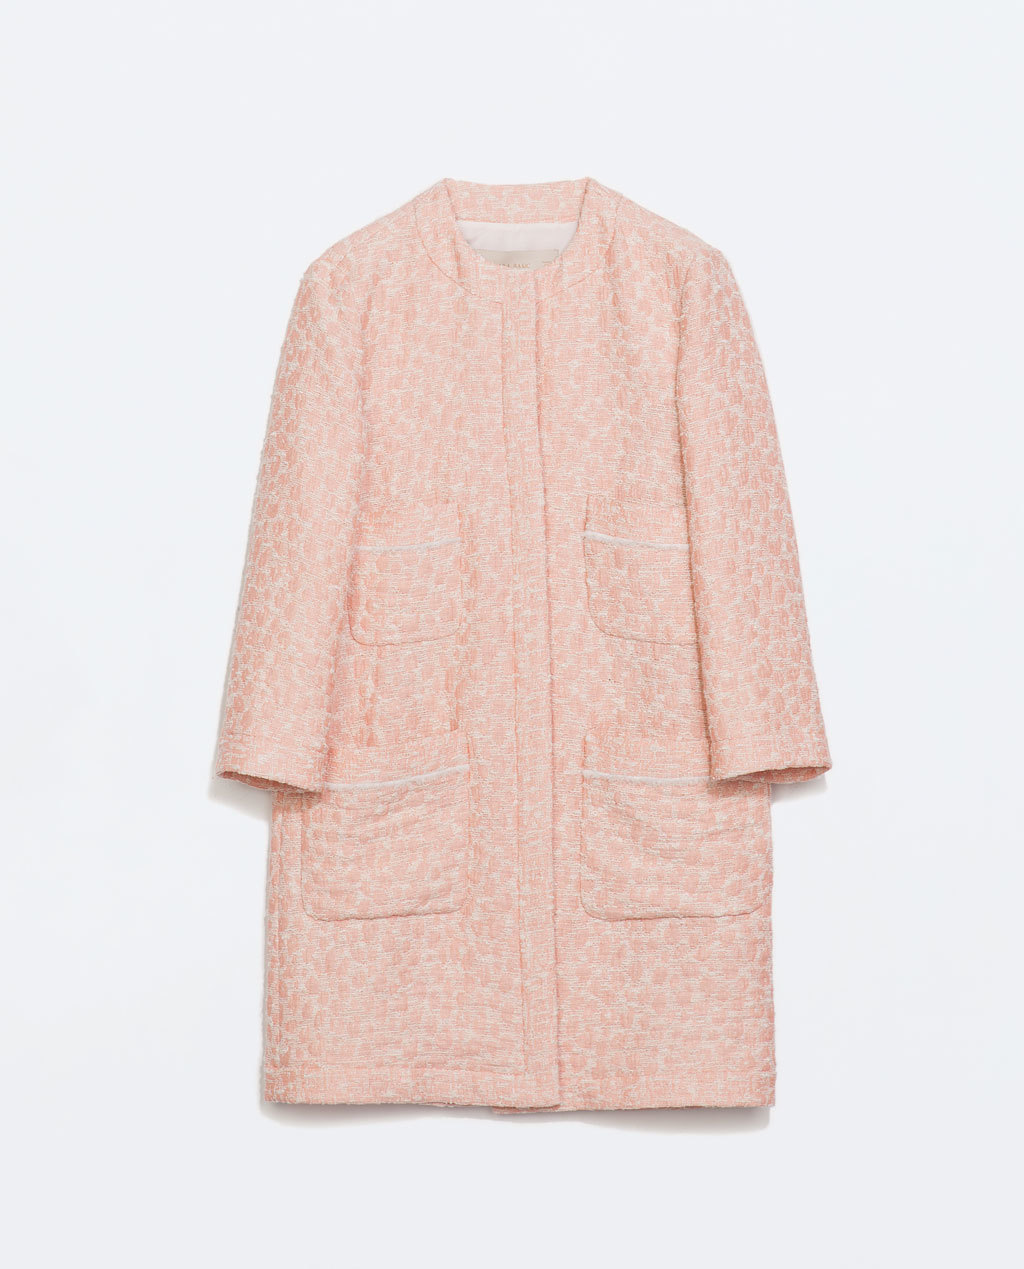 Jacquard Coat With Pockets - pattern: plain; collar: round collar/collarless; style: single breasted; length: mid thigh; secondary colour: white; predominant colour: pink; occasions: casual, work, occasion, creative work; fit: straight cut (boxy); fibres: cotton - mix; sleeve length: 3/4 length; sleeve style: standard; collar break: high; pattern type: fabric; texture group: brocade/jacquard; trends: sorbet shades; season: s/s 2014